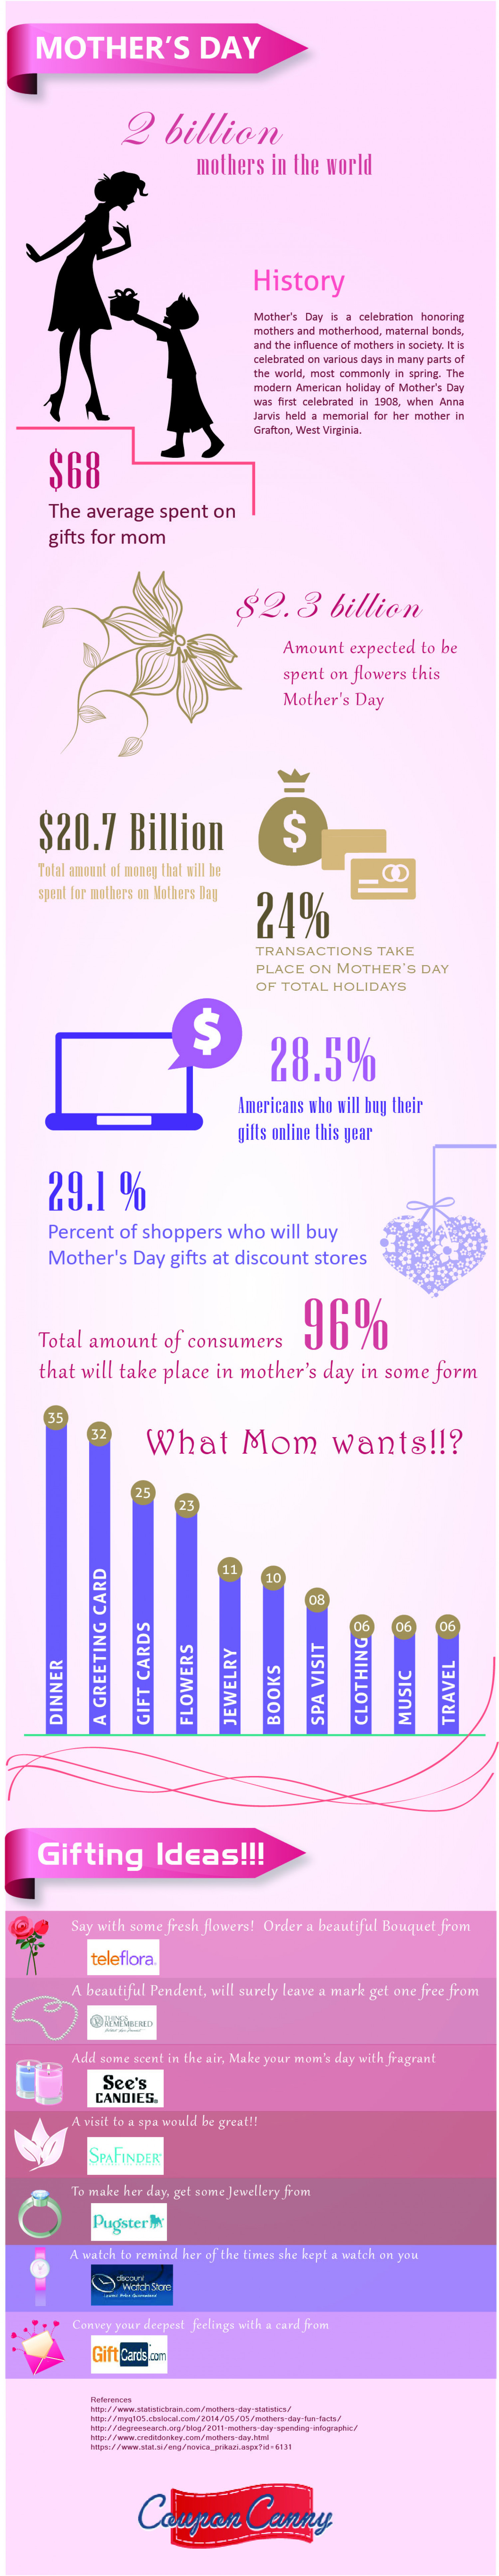 Gifting Ideas for Mother's Day! Infographic